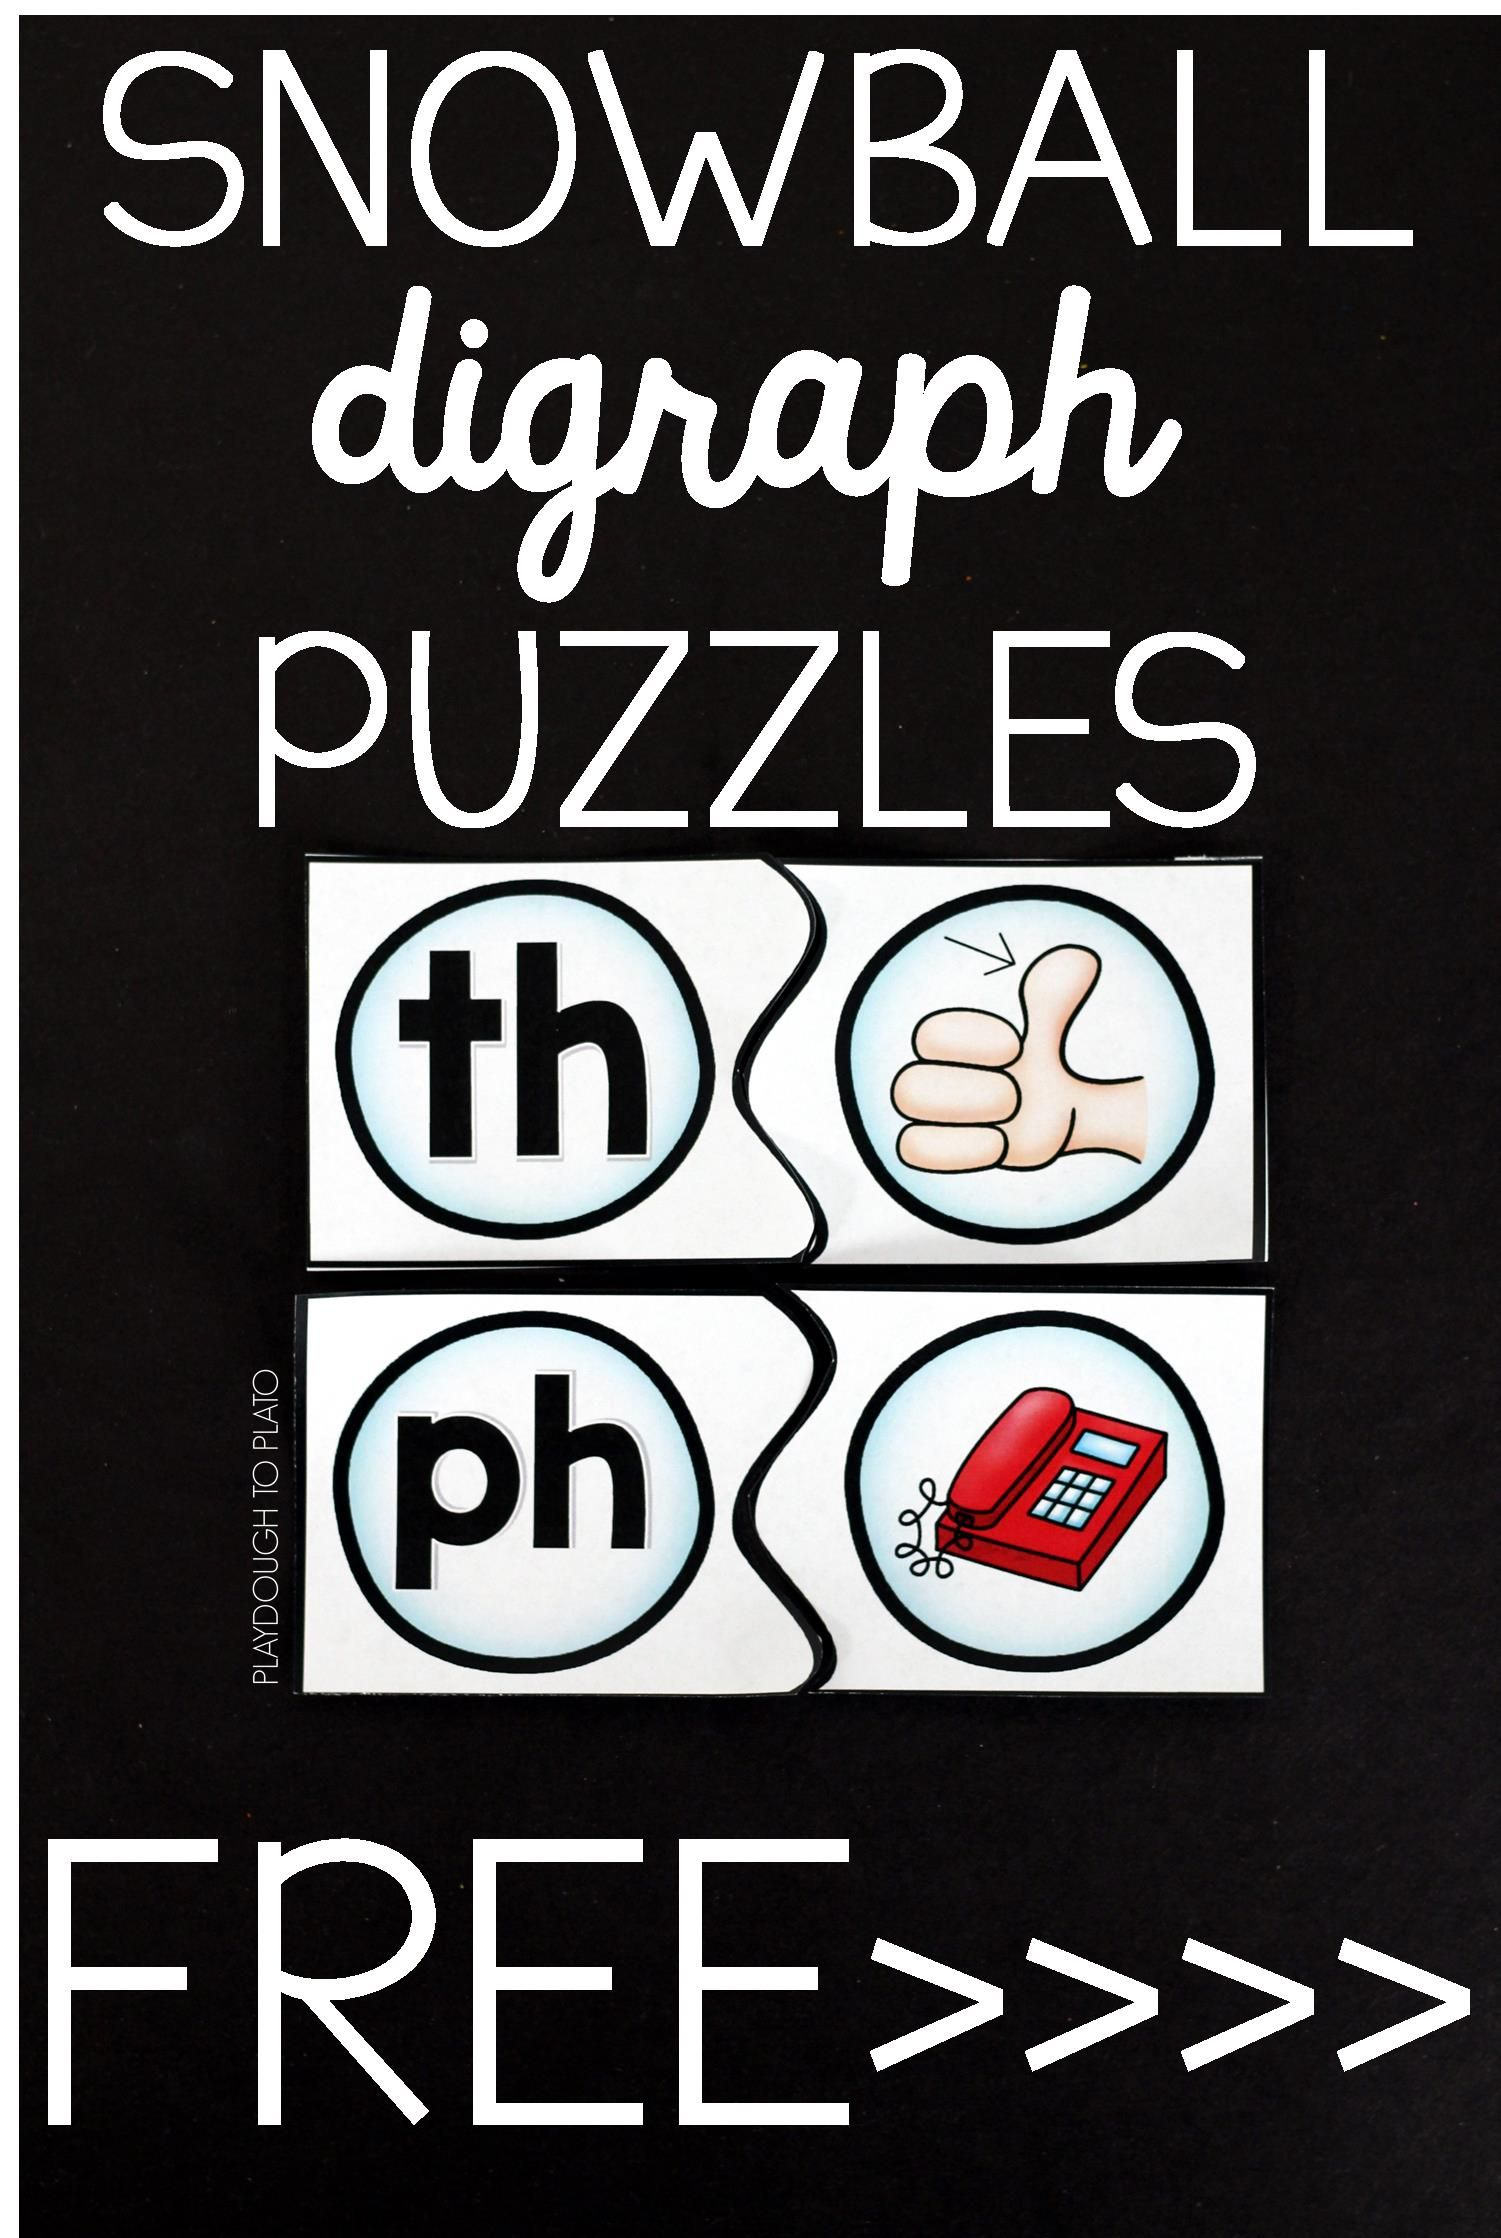 Snowball Digraph Puzzles